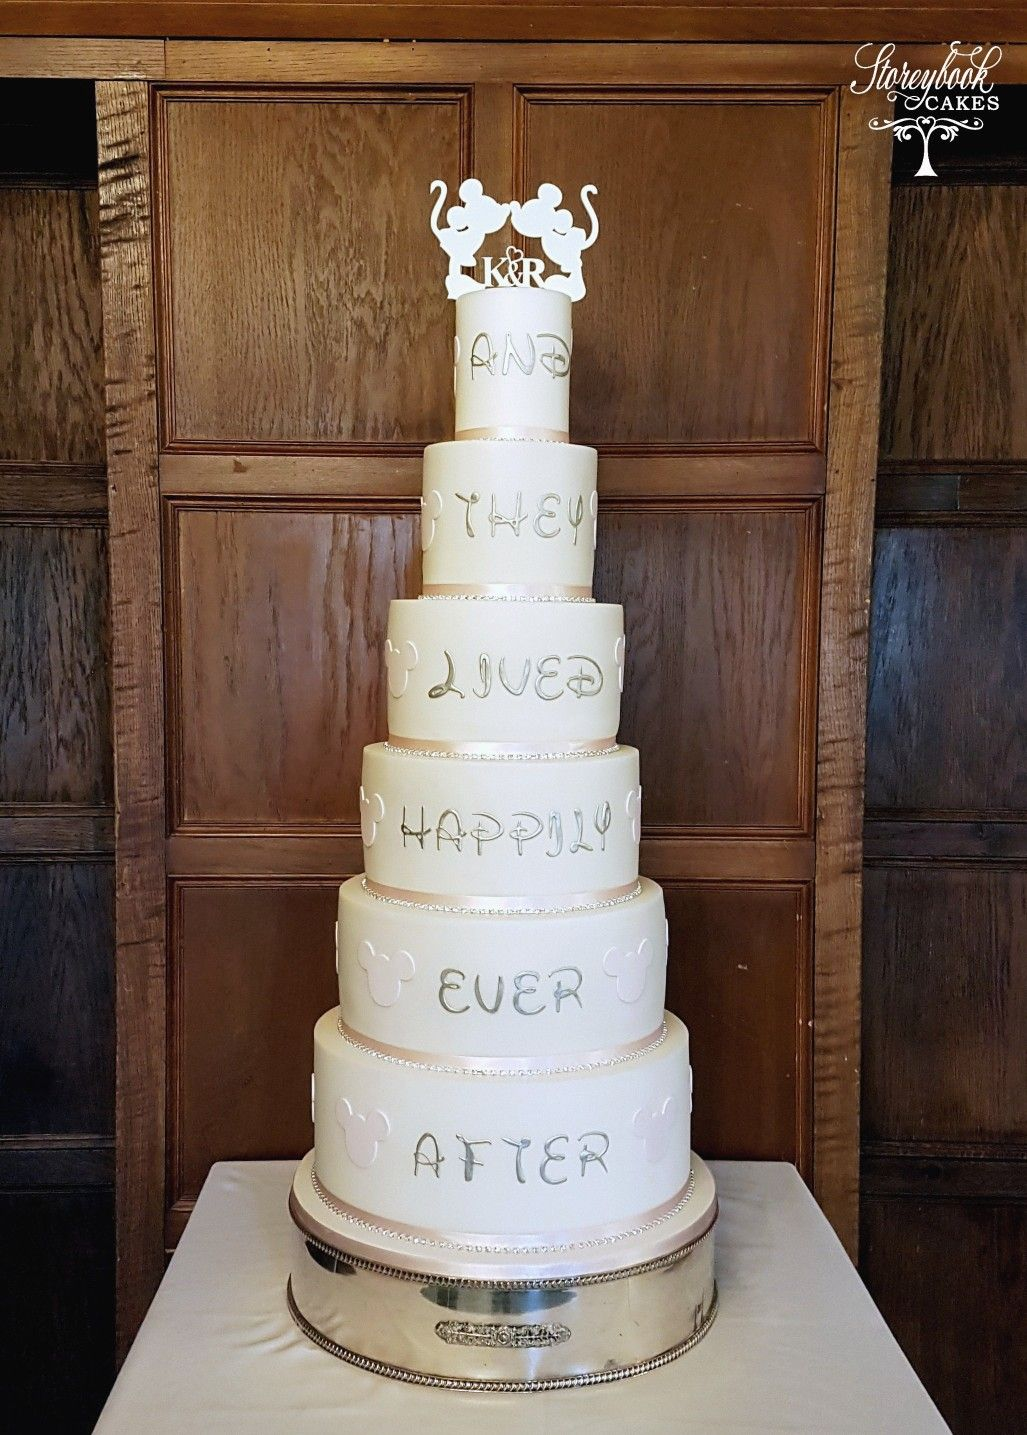 Fairytale 6 Tier Wedding Cake With And They Lived Happily Ever After Wedding Cake Enchanted Wedding Cake Images Tiered Wedding Cake